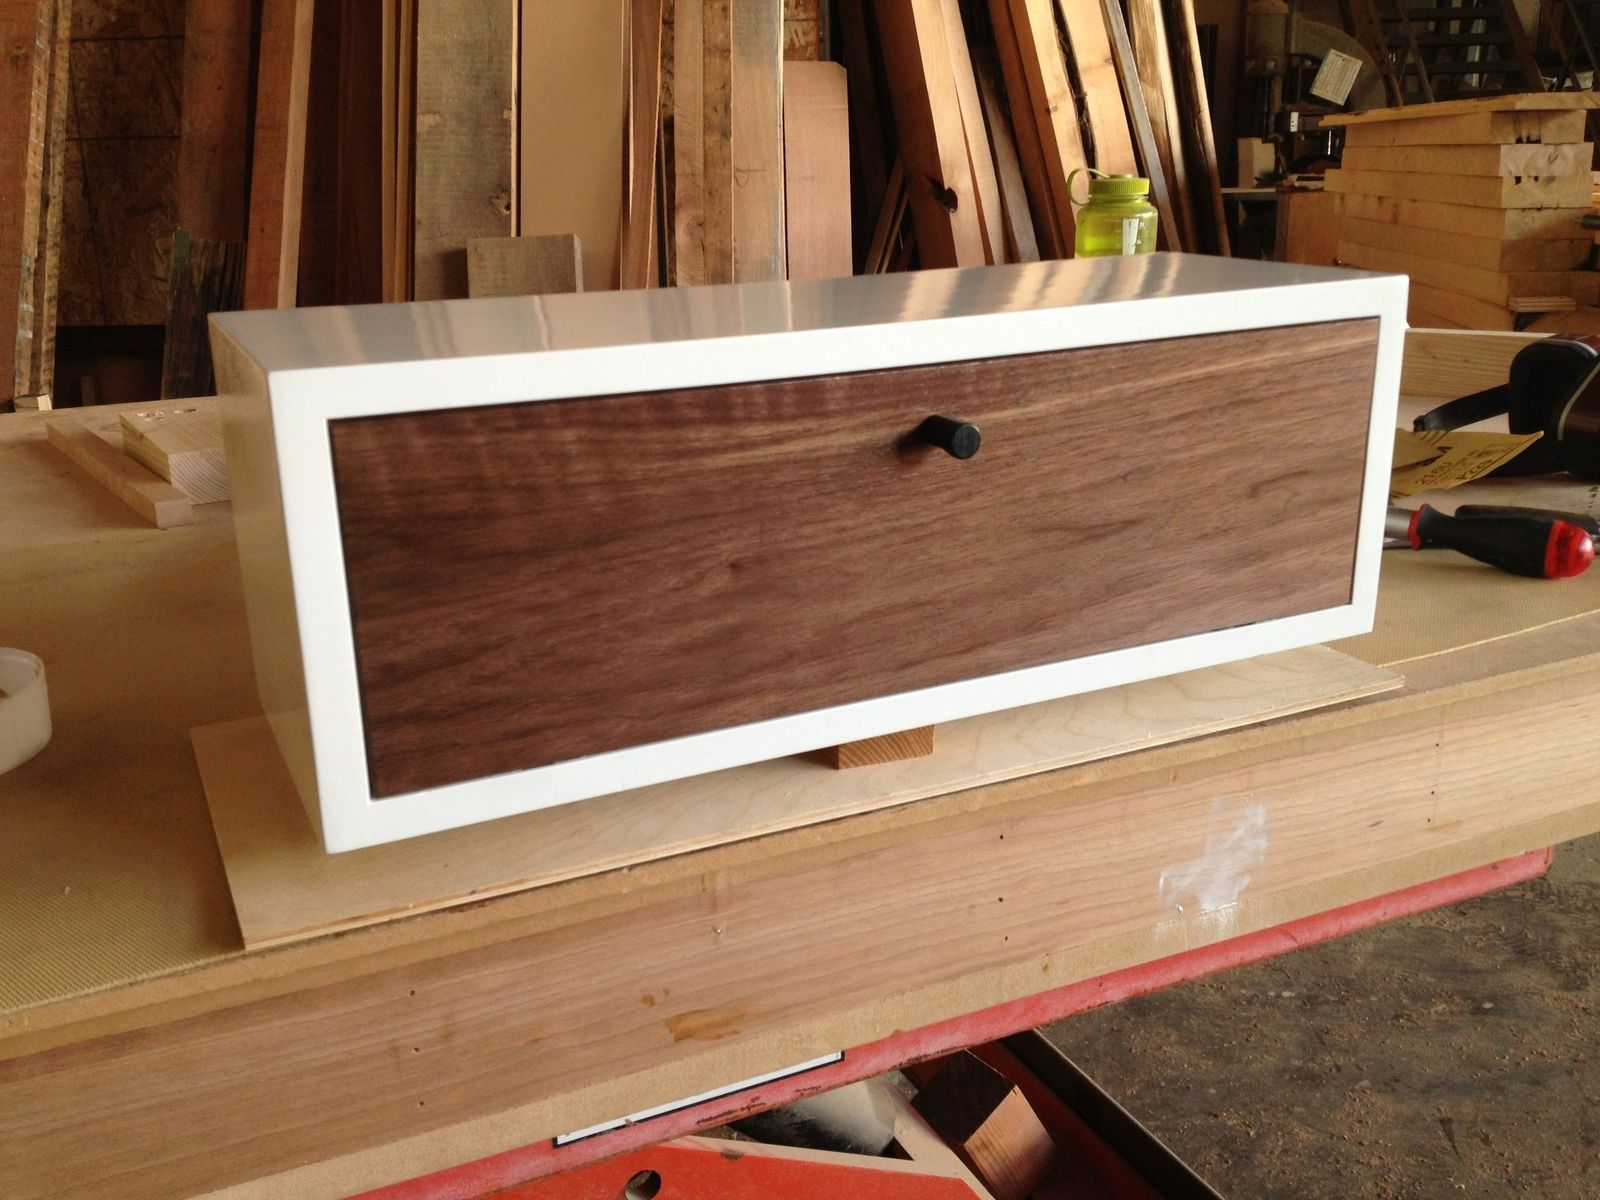 Custom Made Small Floating Bathroom Shelf Cabinet By Sawn